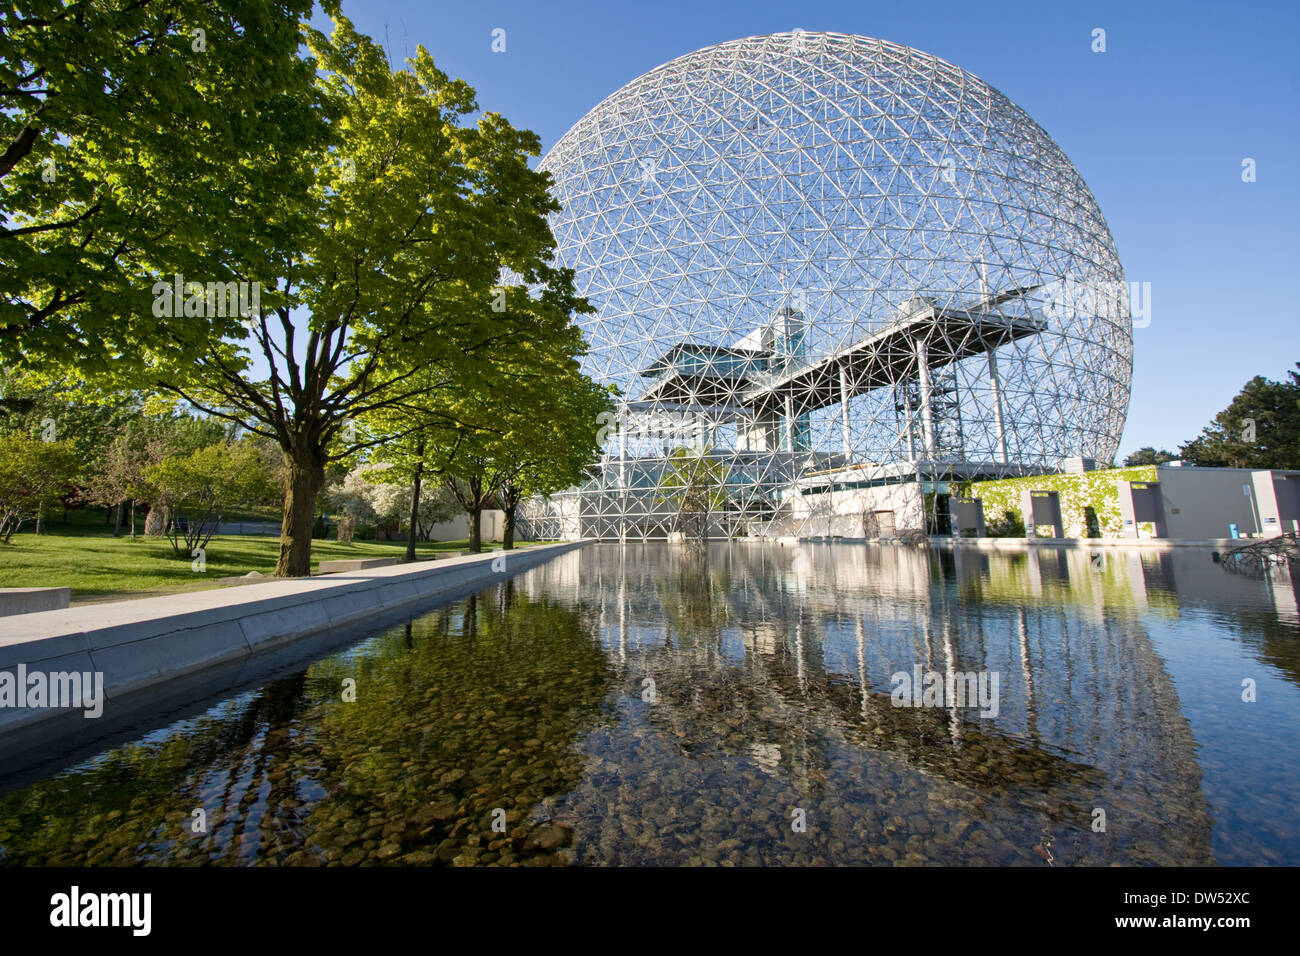 Biosphere of Montreal with nice reflections in springs, Canada - Stock Image